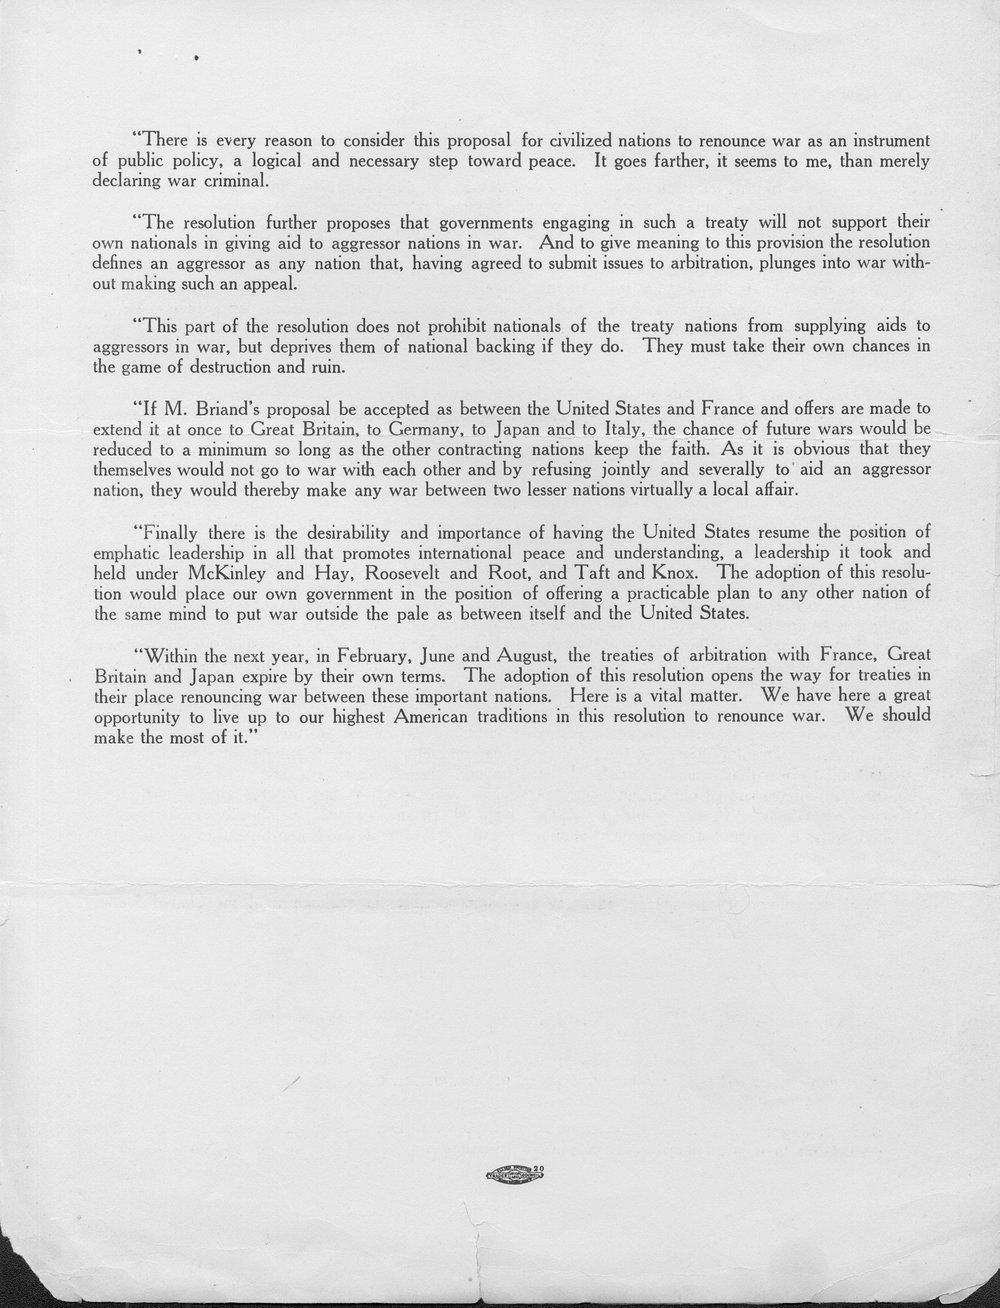 Senator Capper's proposed reply to the Briand Peace Offer - 3